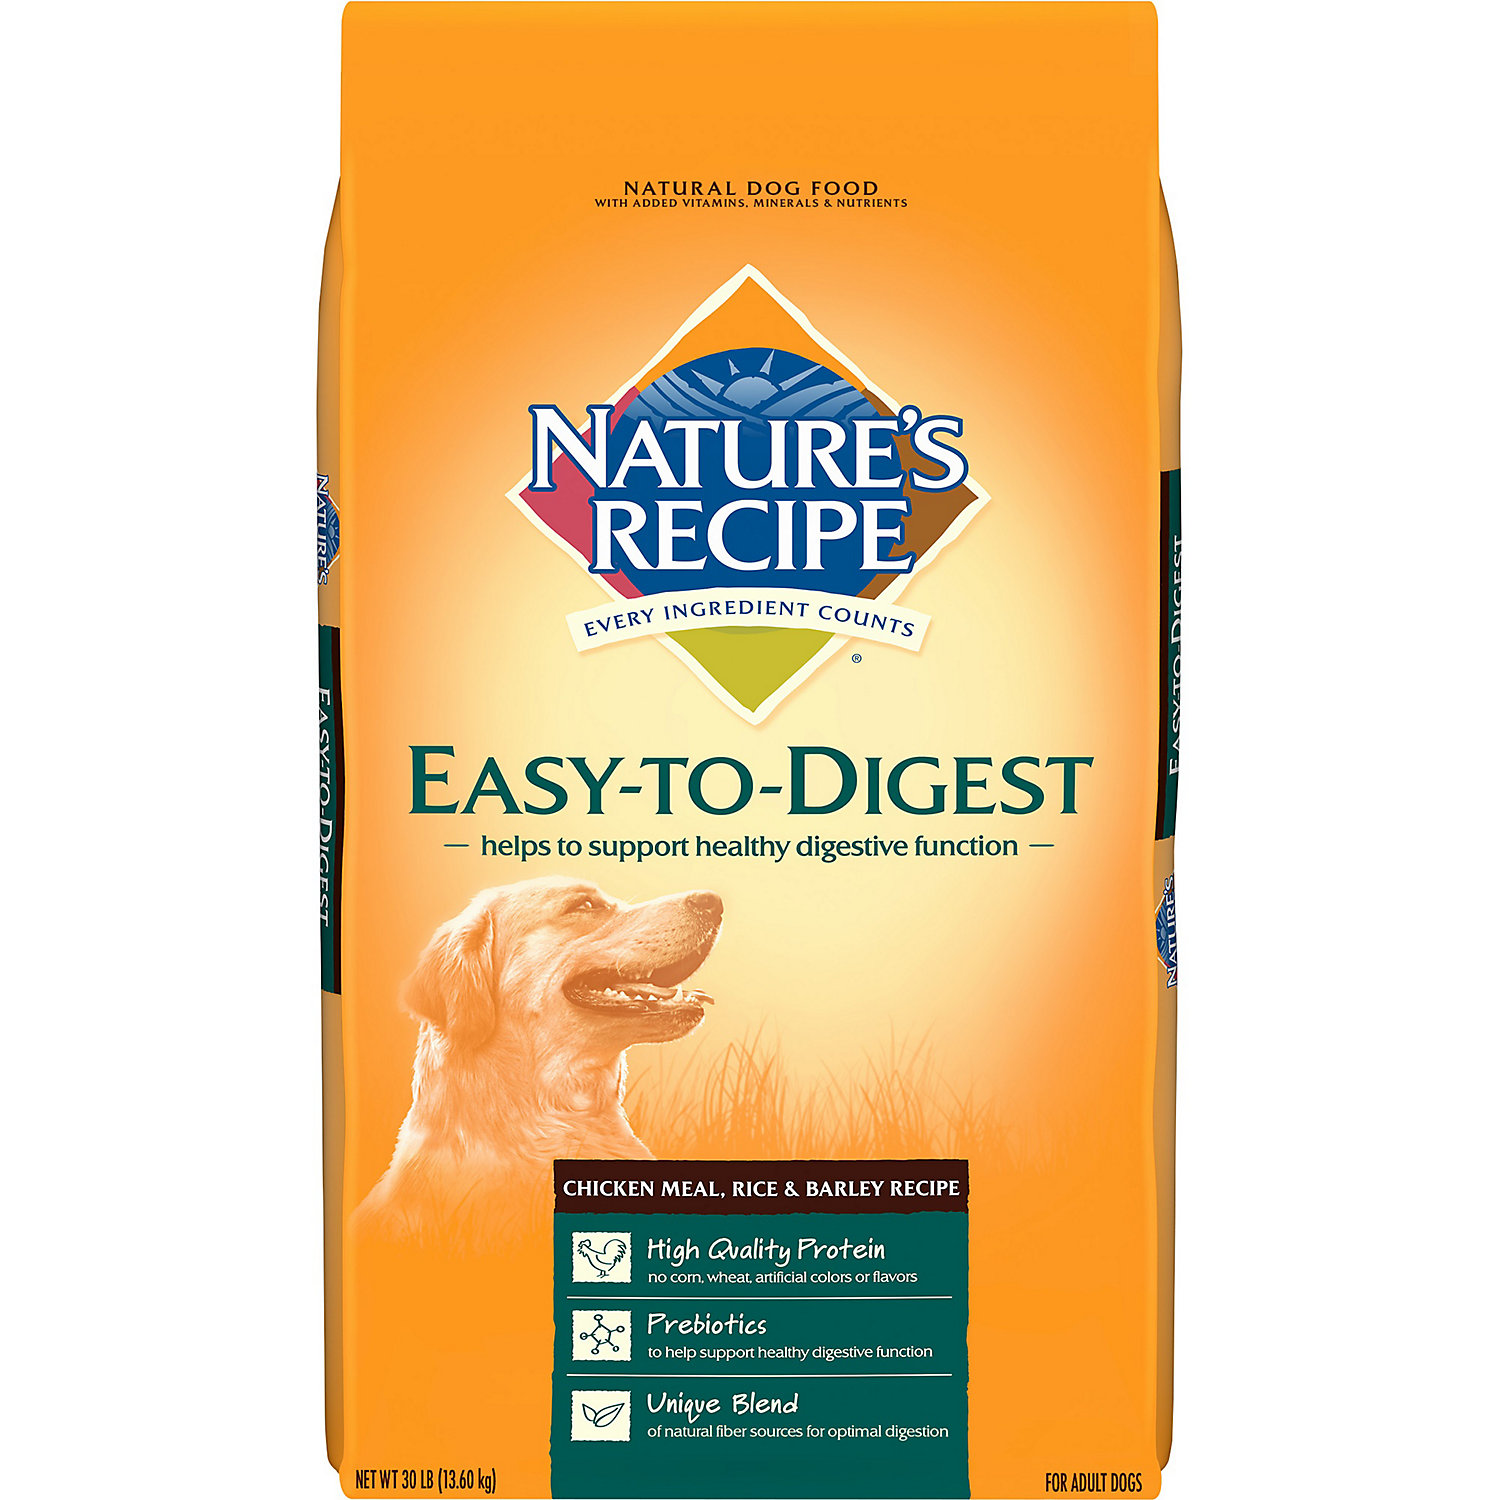 Nature's Recipe Easy to Digest Chicken Meal, Rice & Barley Dry Dog Food